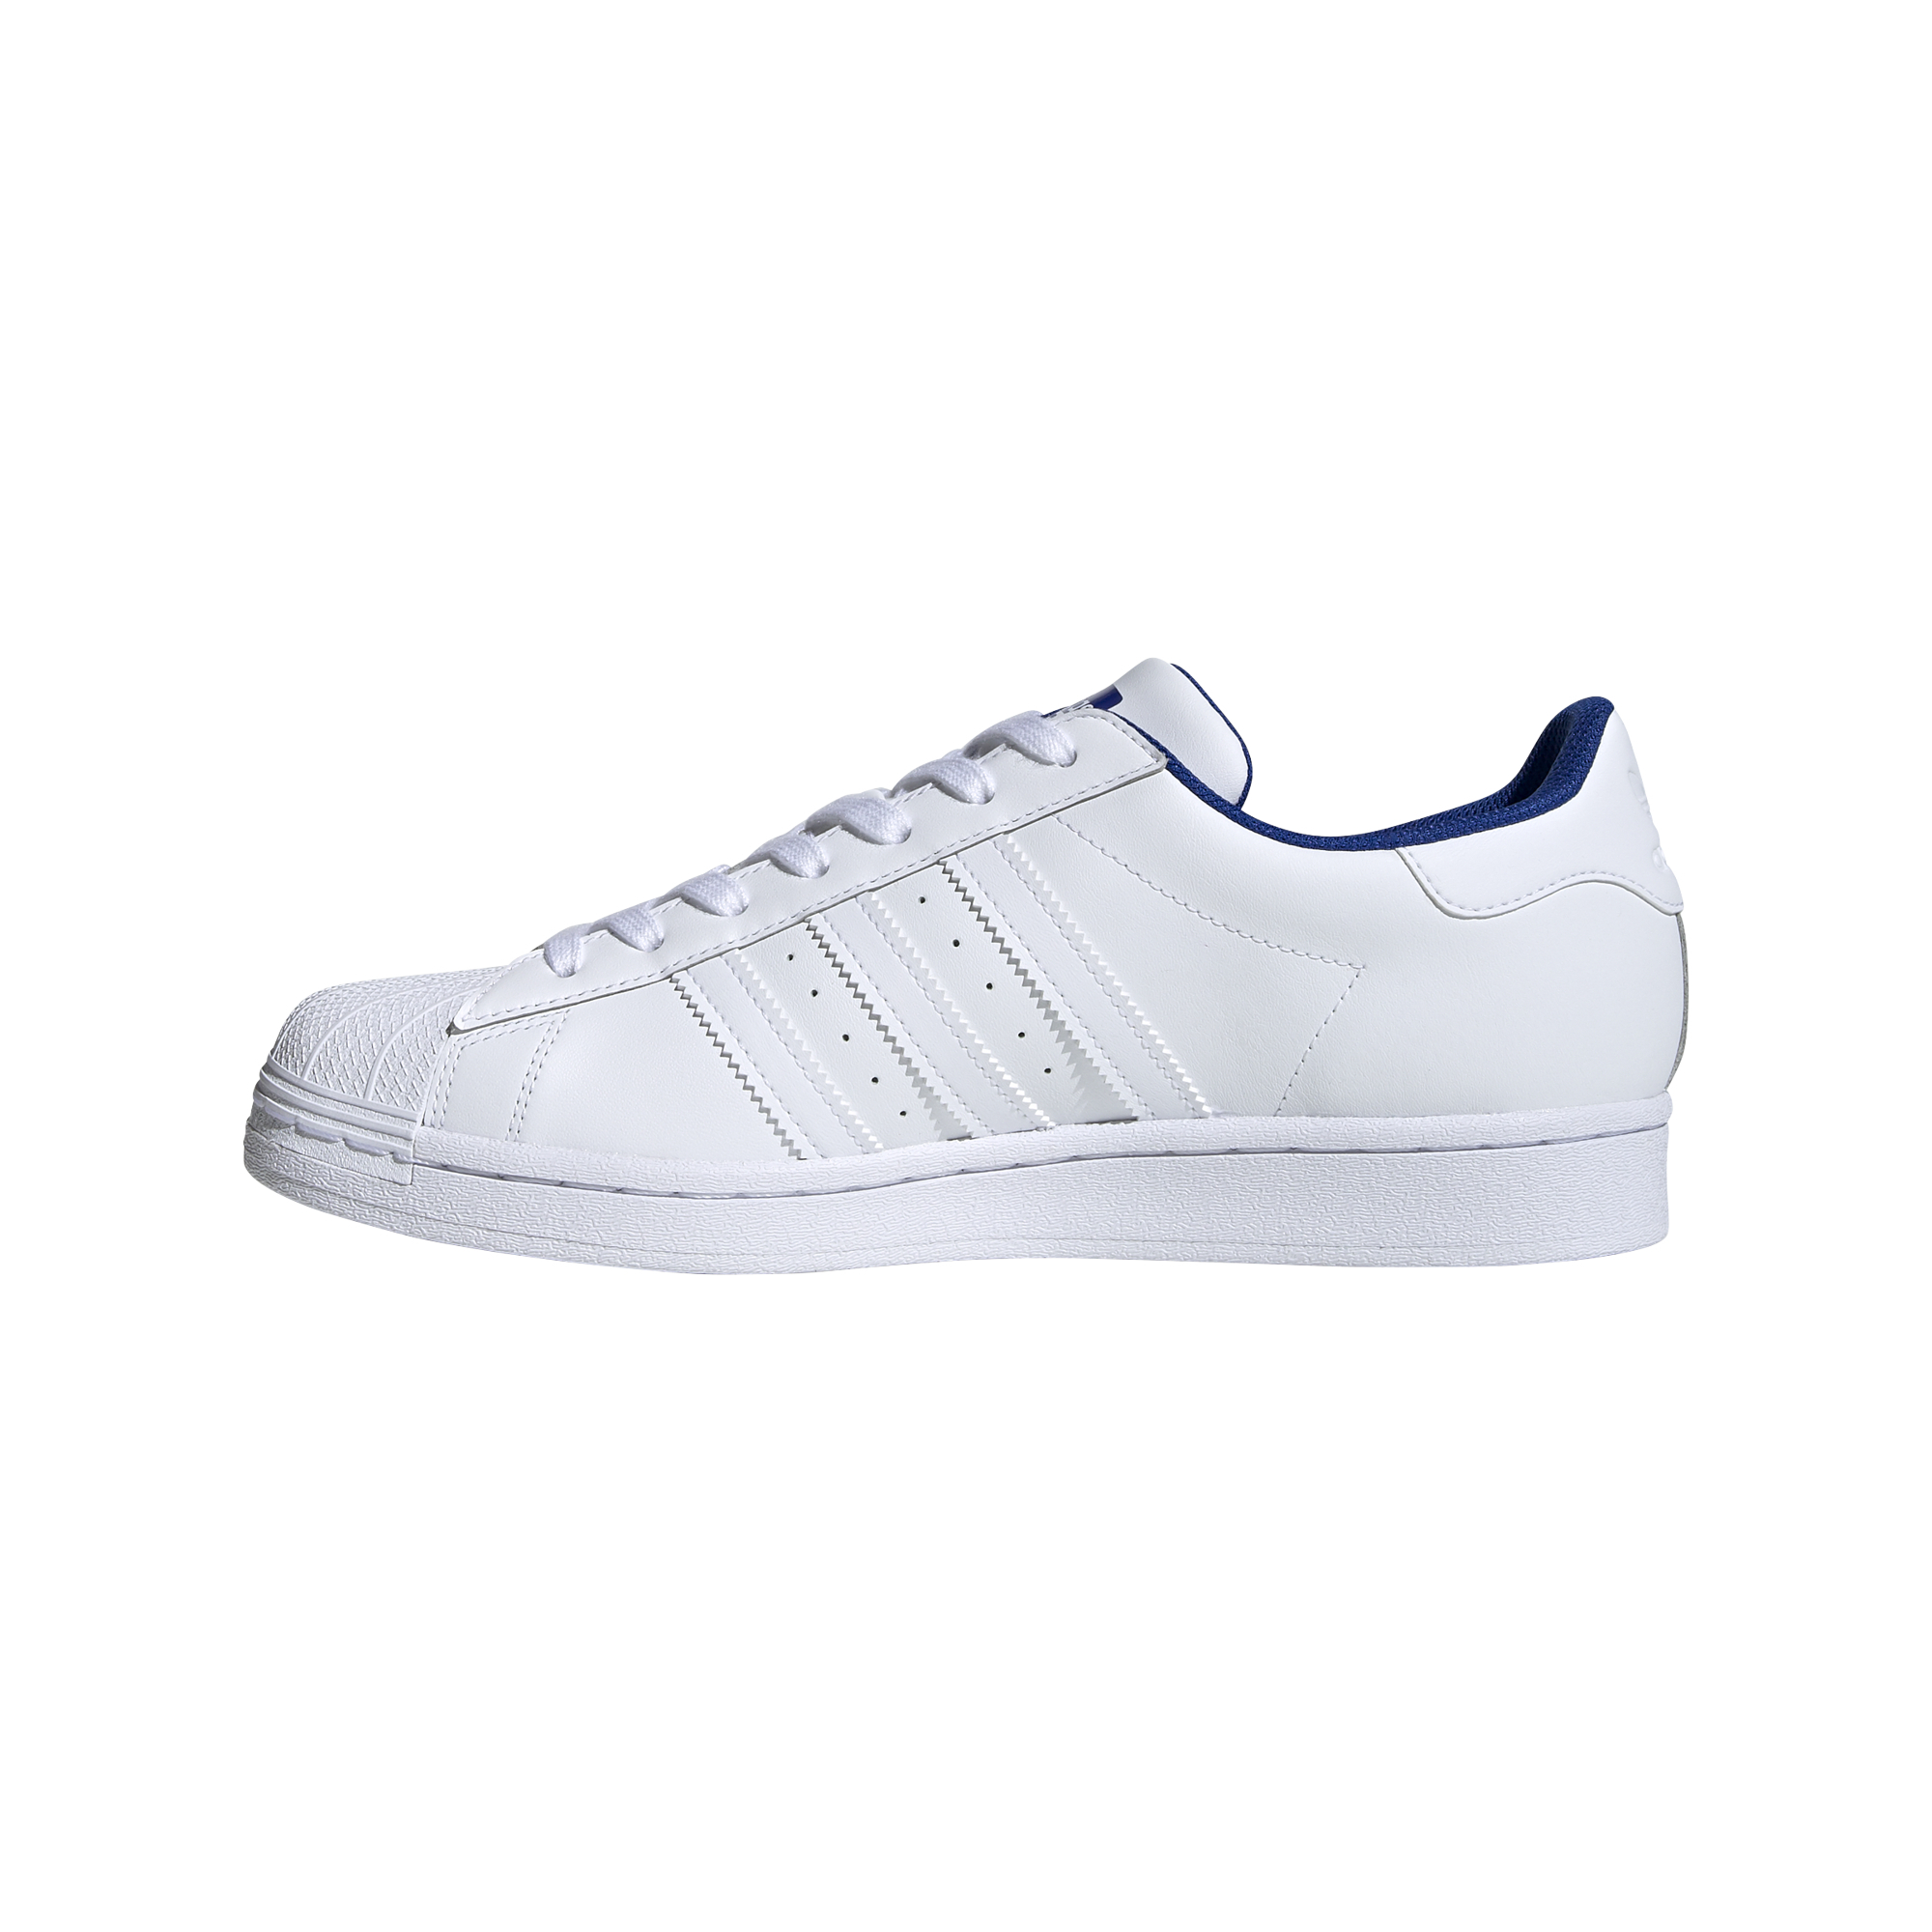 adidas Superstar Ftw White/ Ftw White/ Royal Blue EUR 42